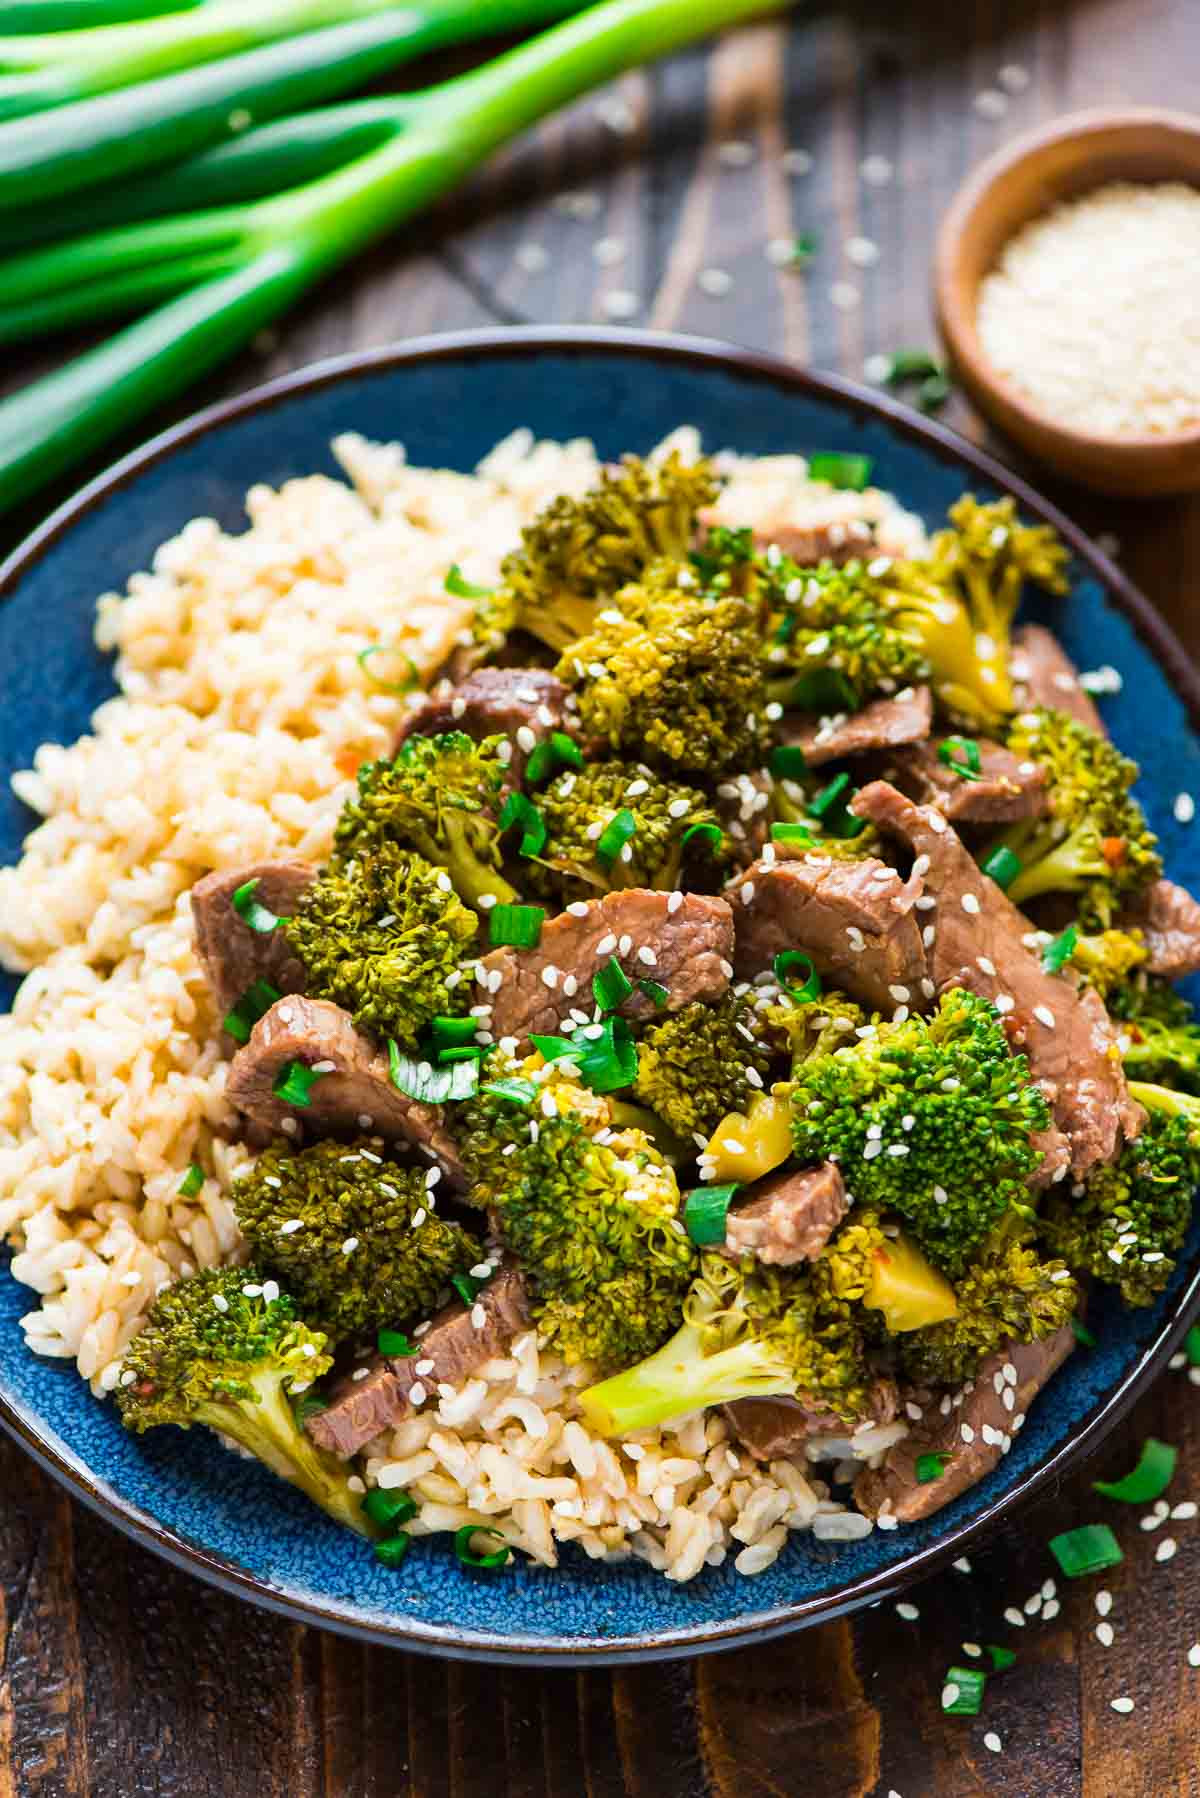 Healthy Beef And Broccoli Recipe  Slow Cooker Beef and Broccoli